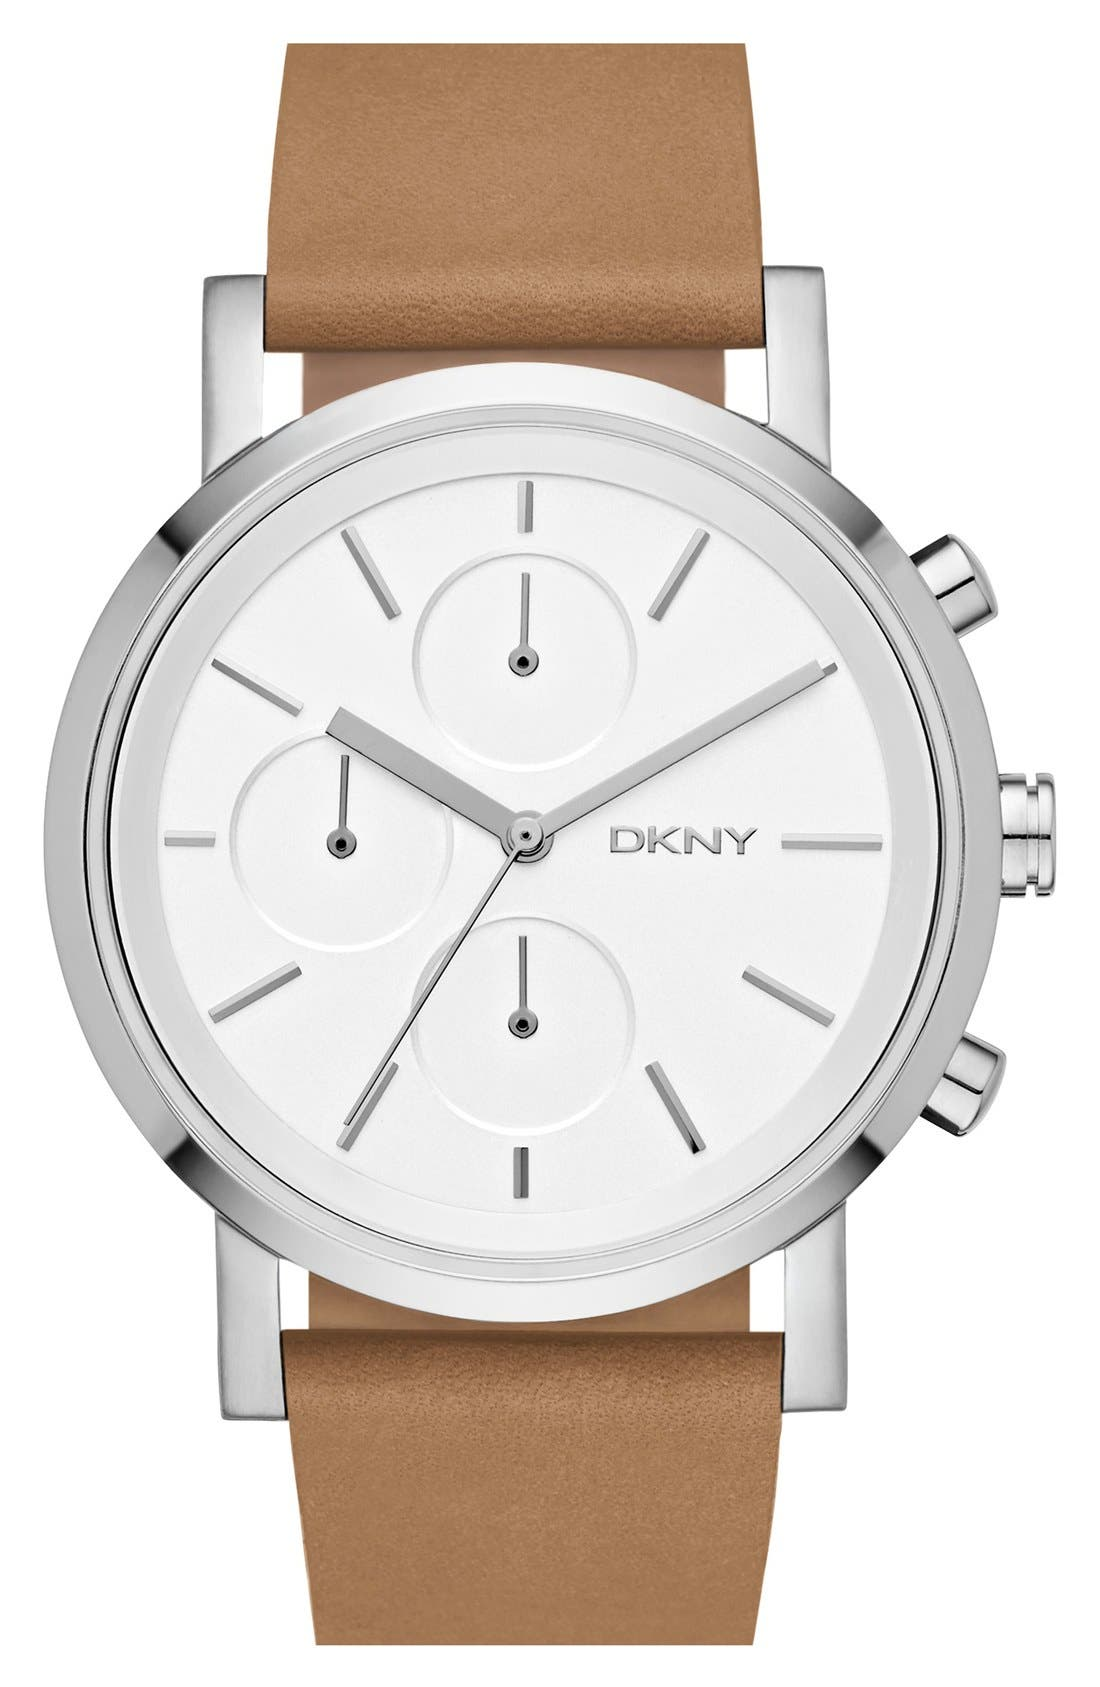 Main Image - DKNY 'Soho' Chronograph Leather Strap Watch, 38mm